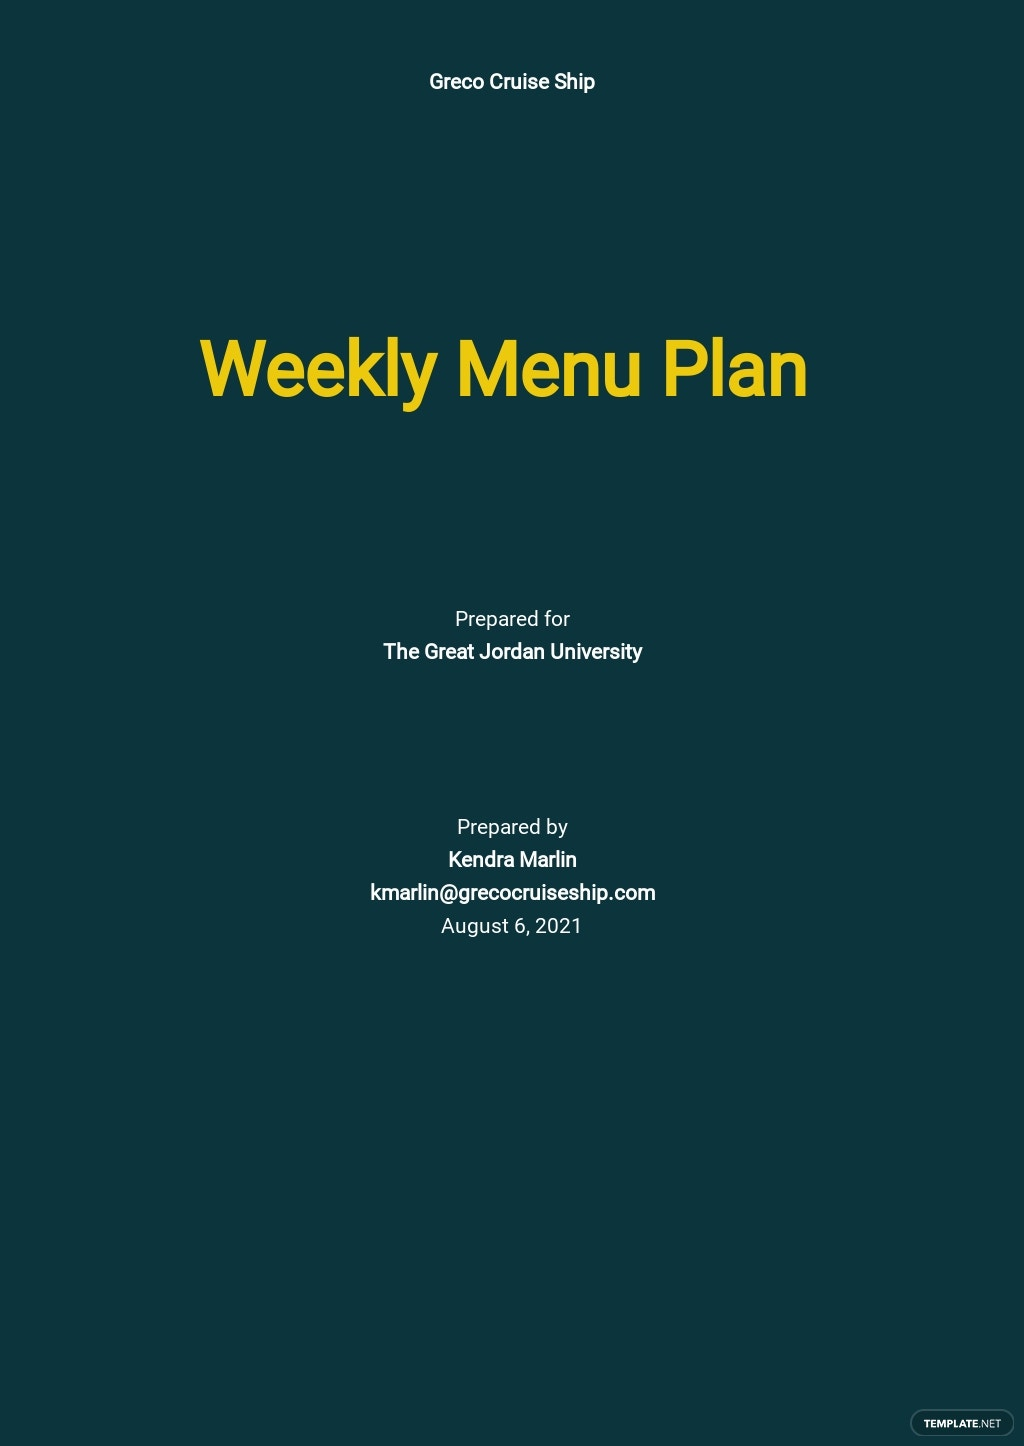 Weekly Menu Plan Template